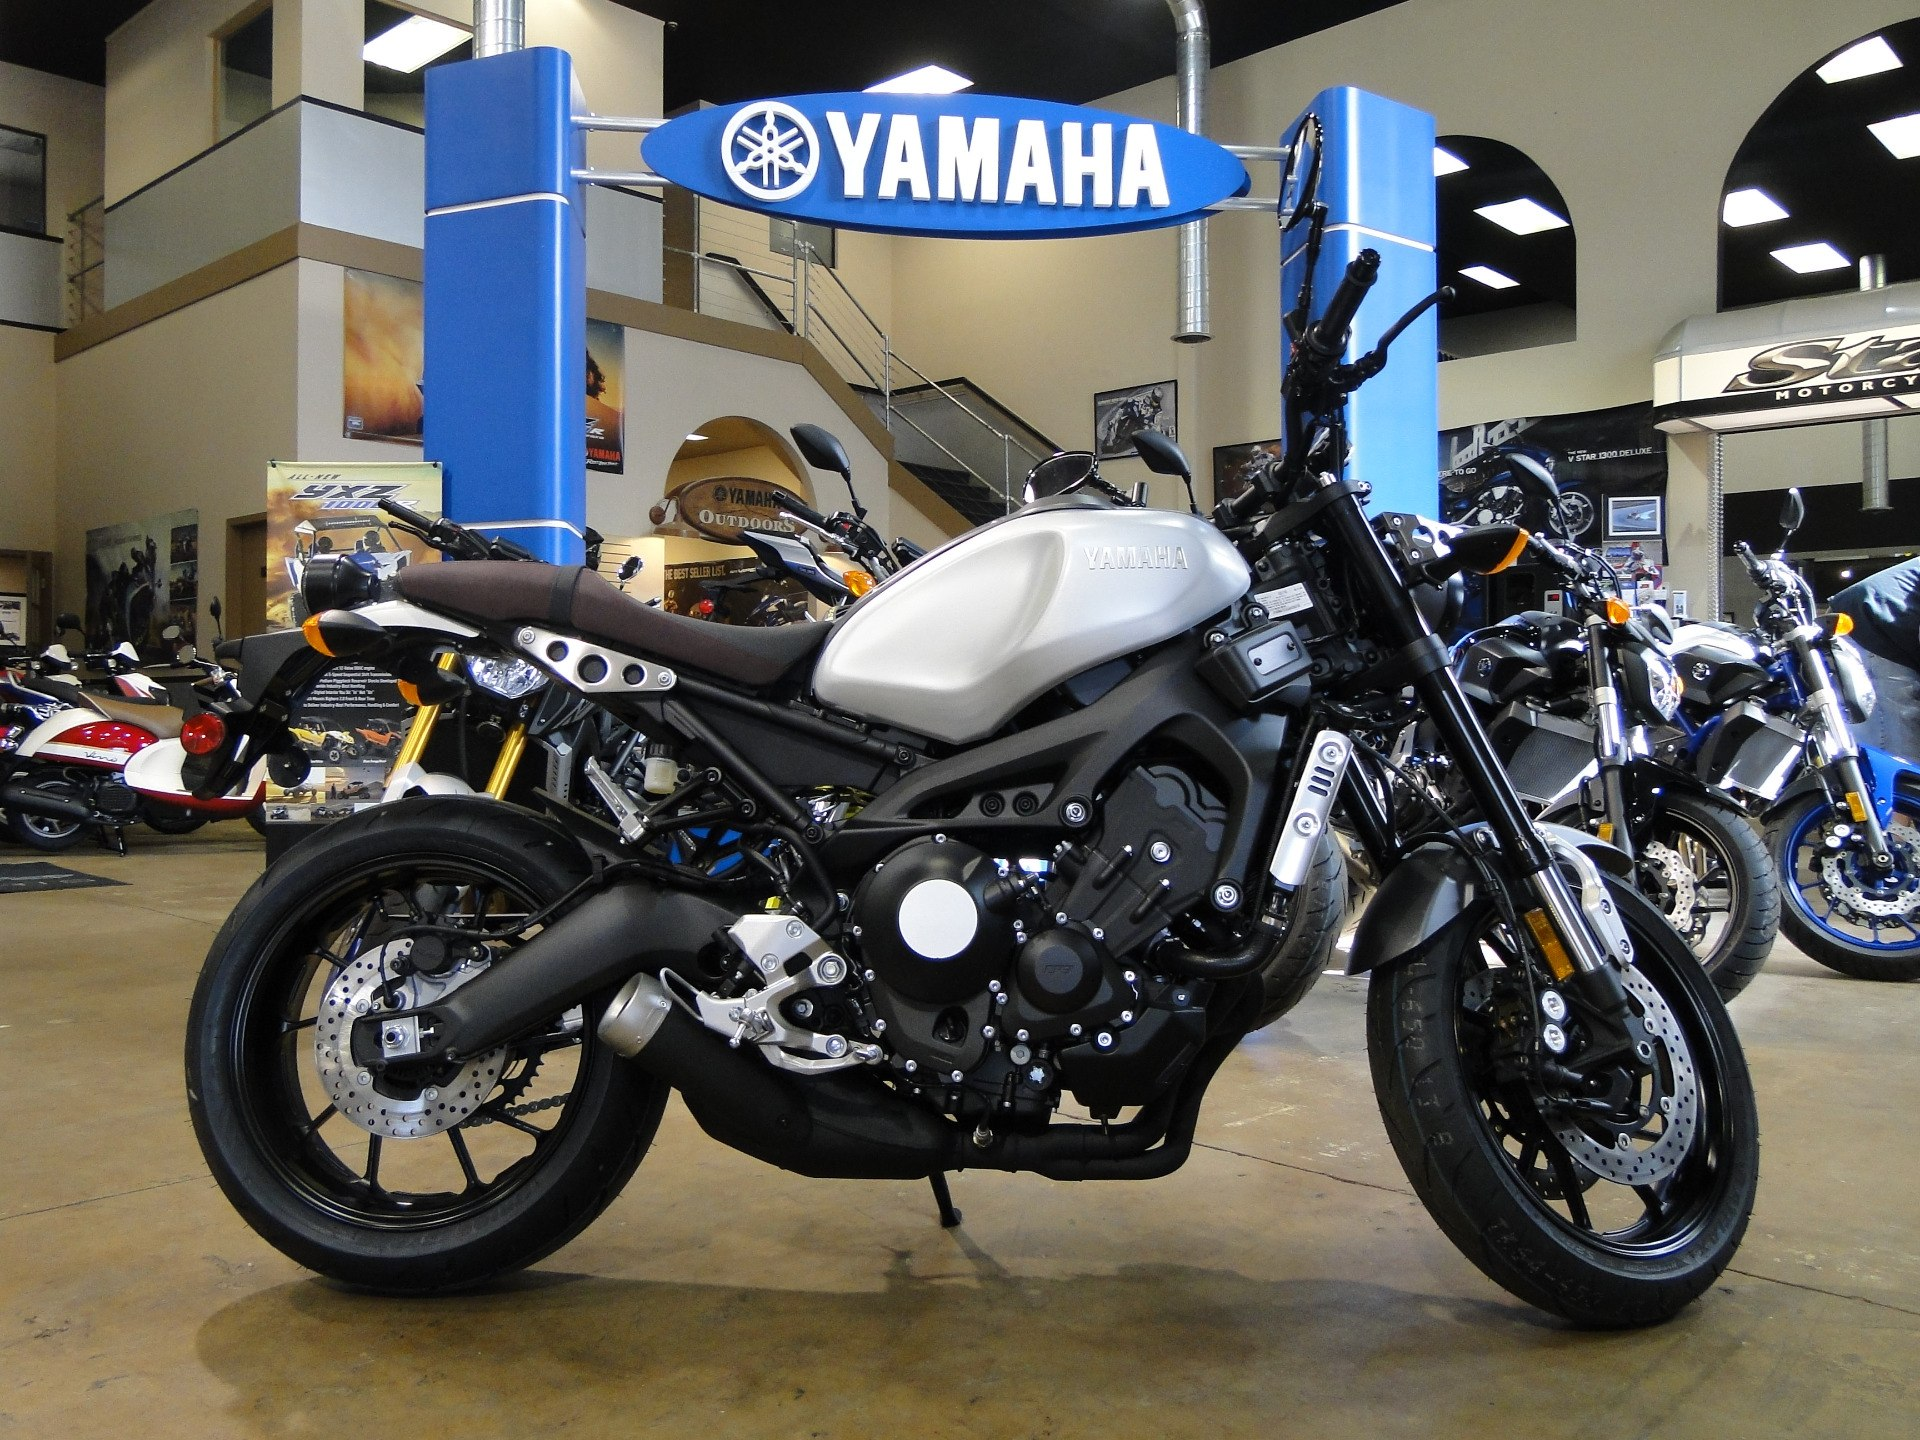 2016 Yamaha XSR900 in Denver, Colorado